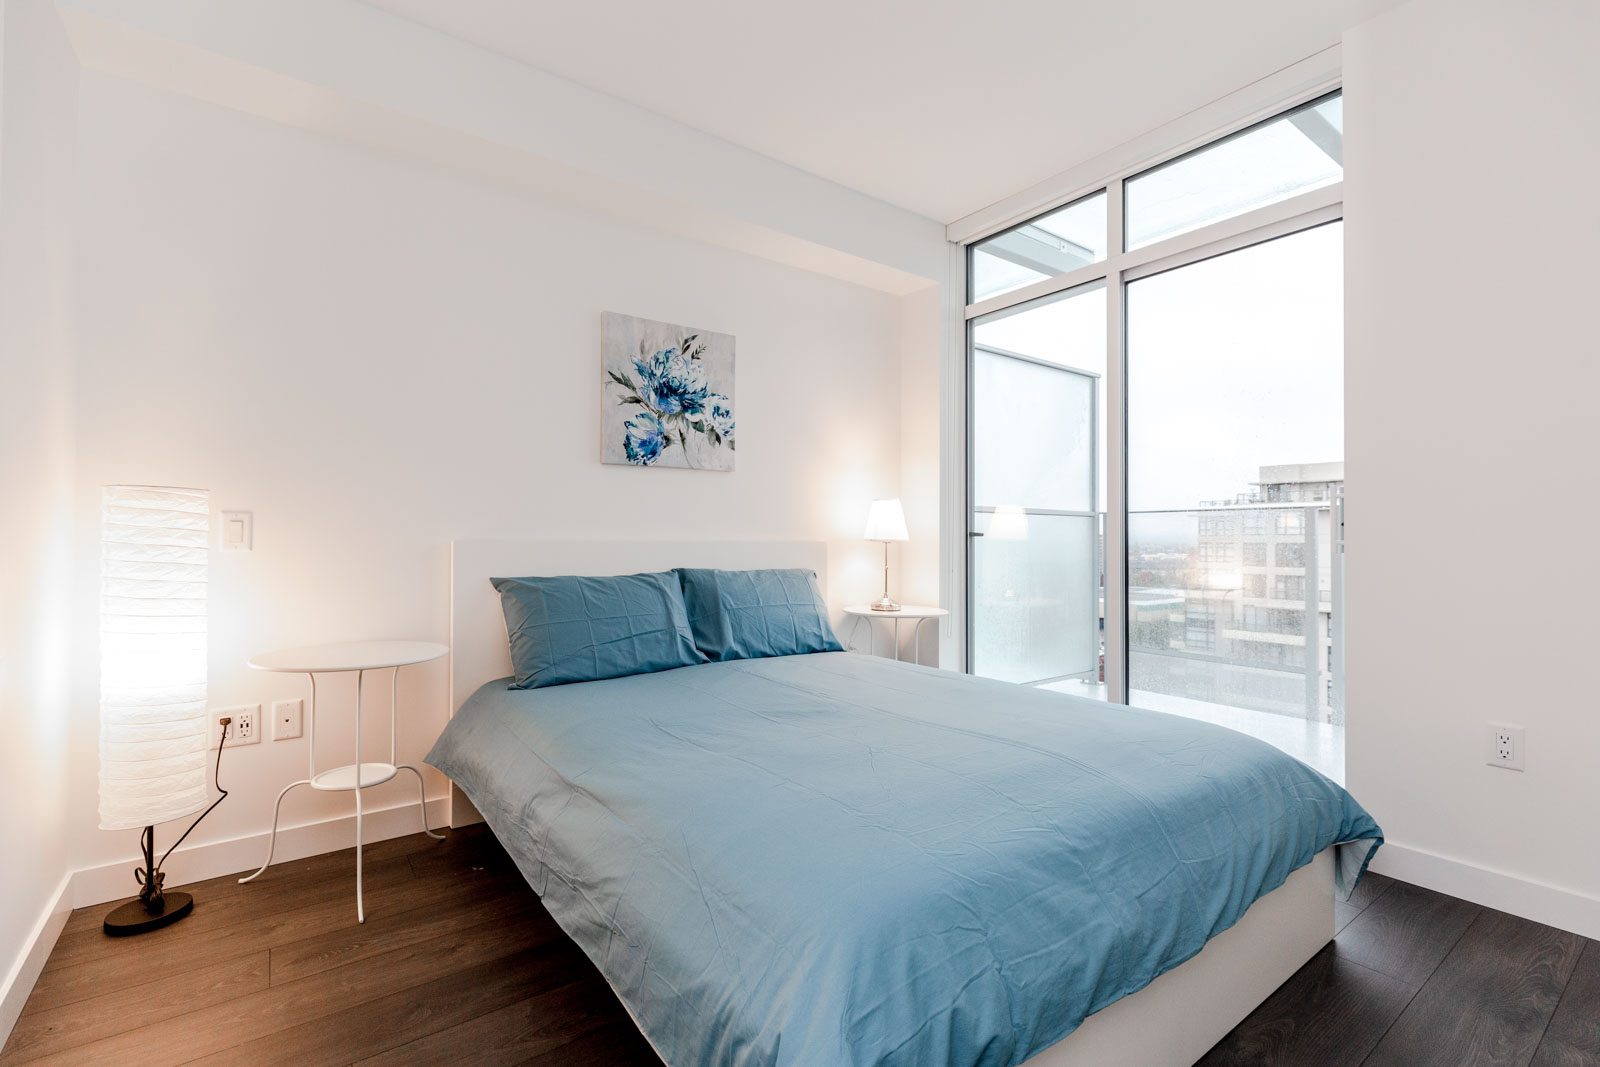 Bedroom With Blue Duvet at Richmond Condo For Rent